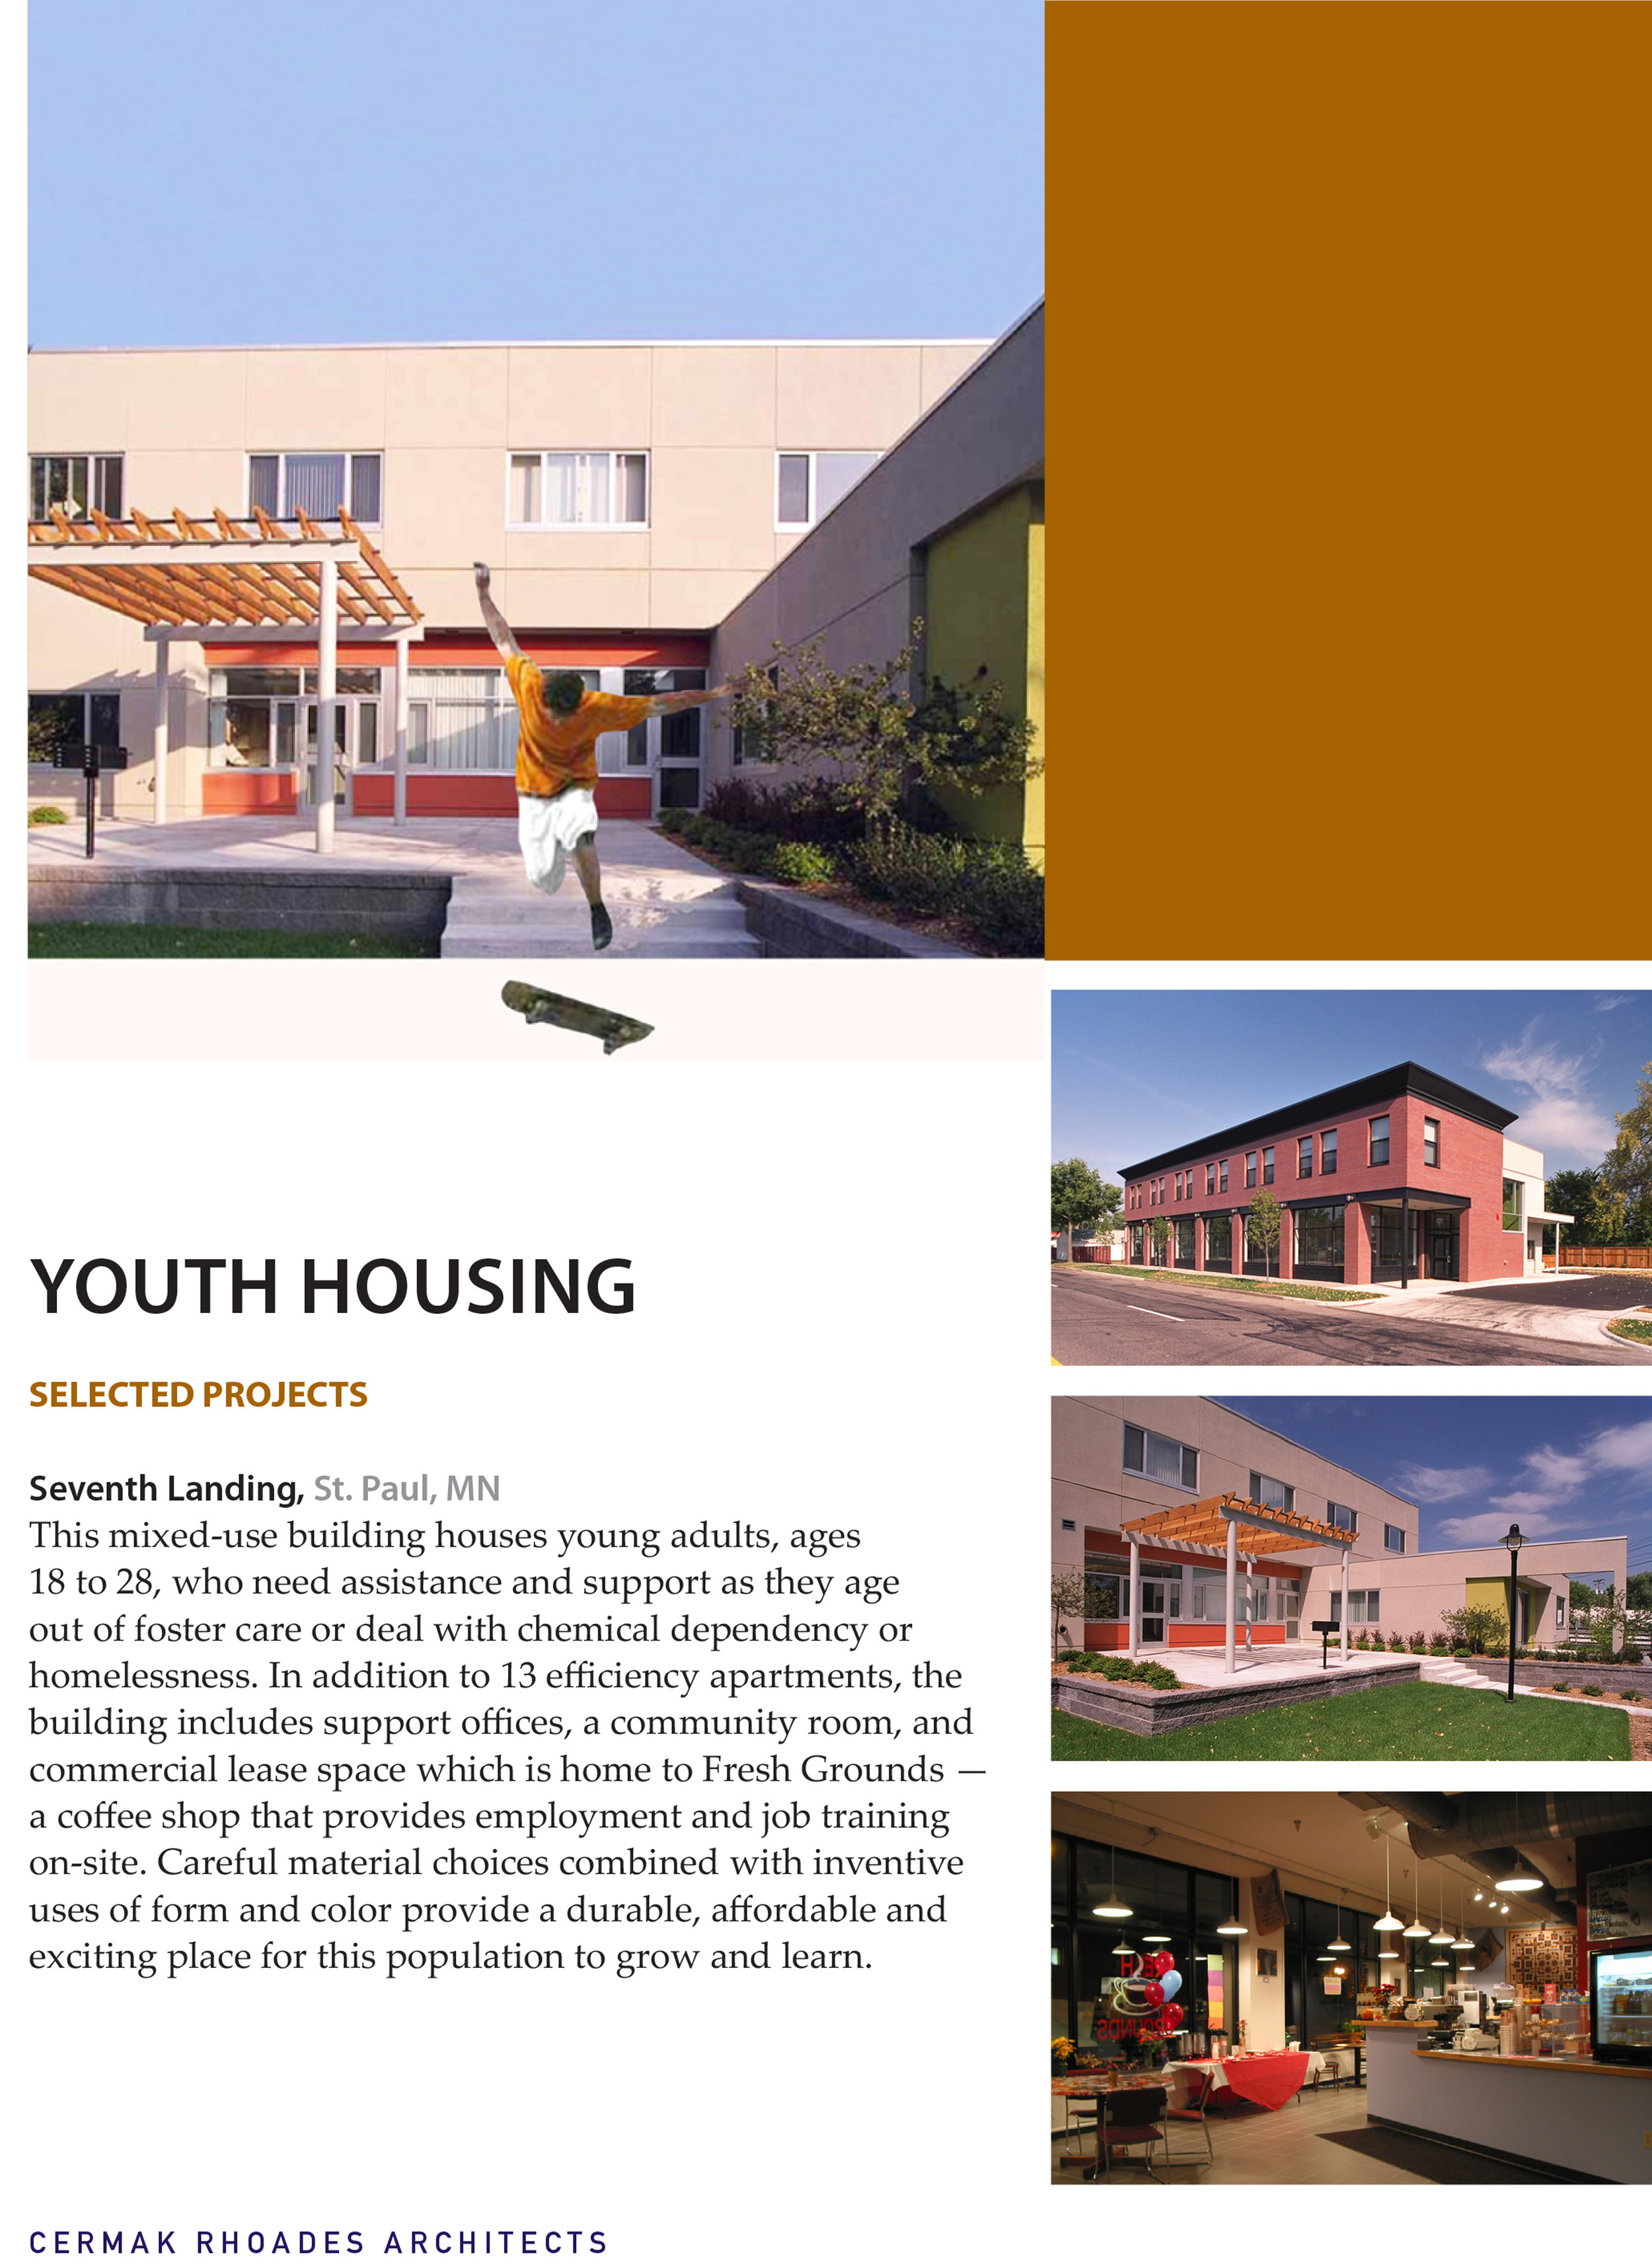 Youth housing info all 103007 1.jpg